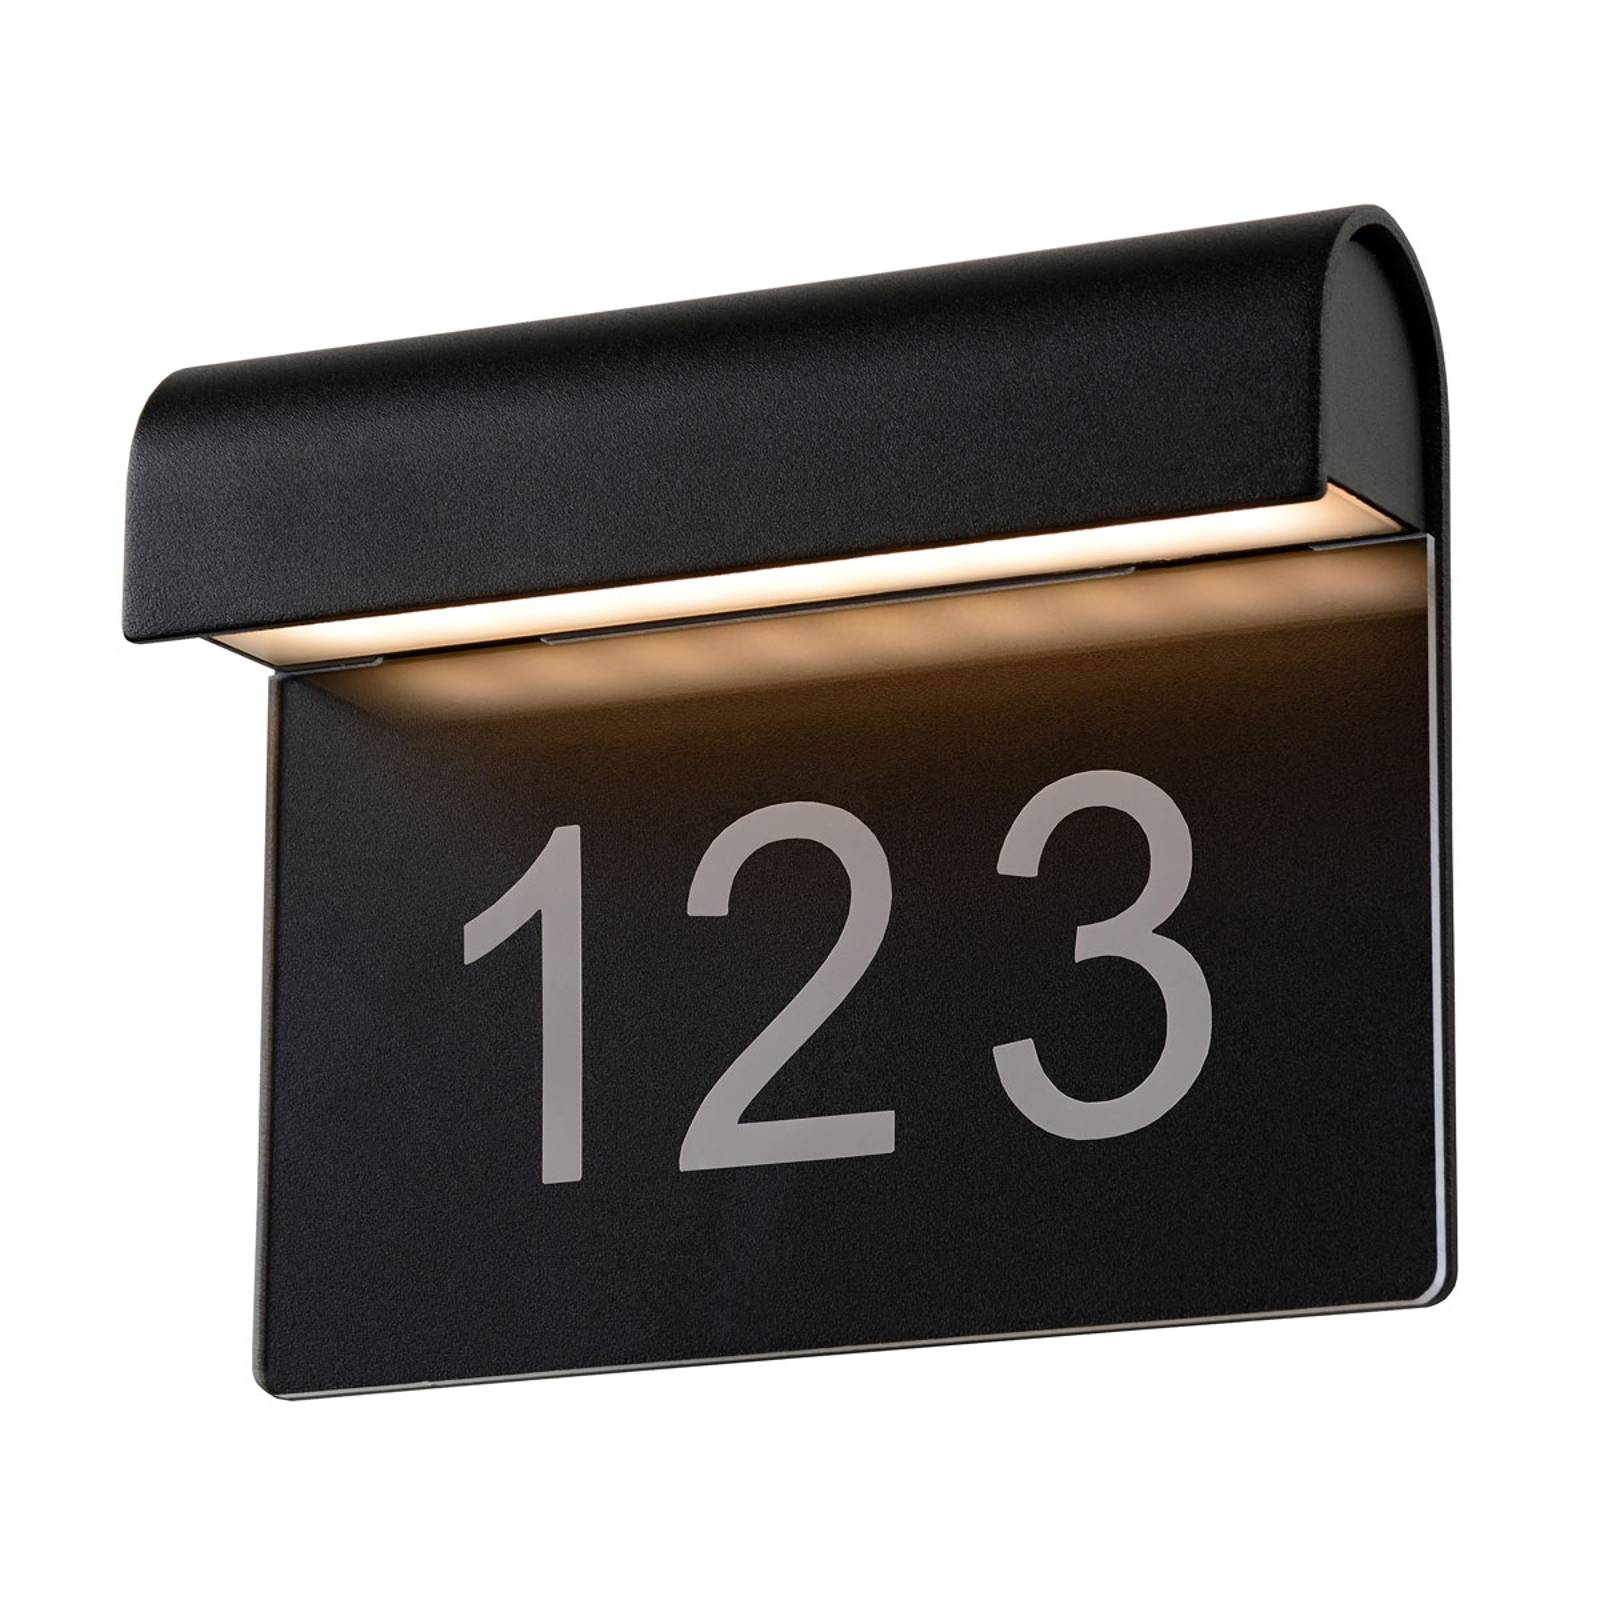 LED house number light Thesi, black from Lucide